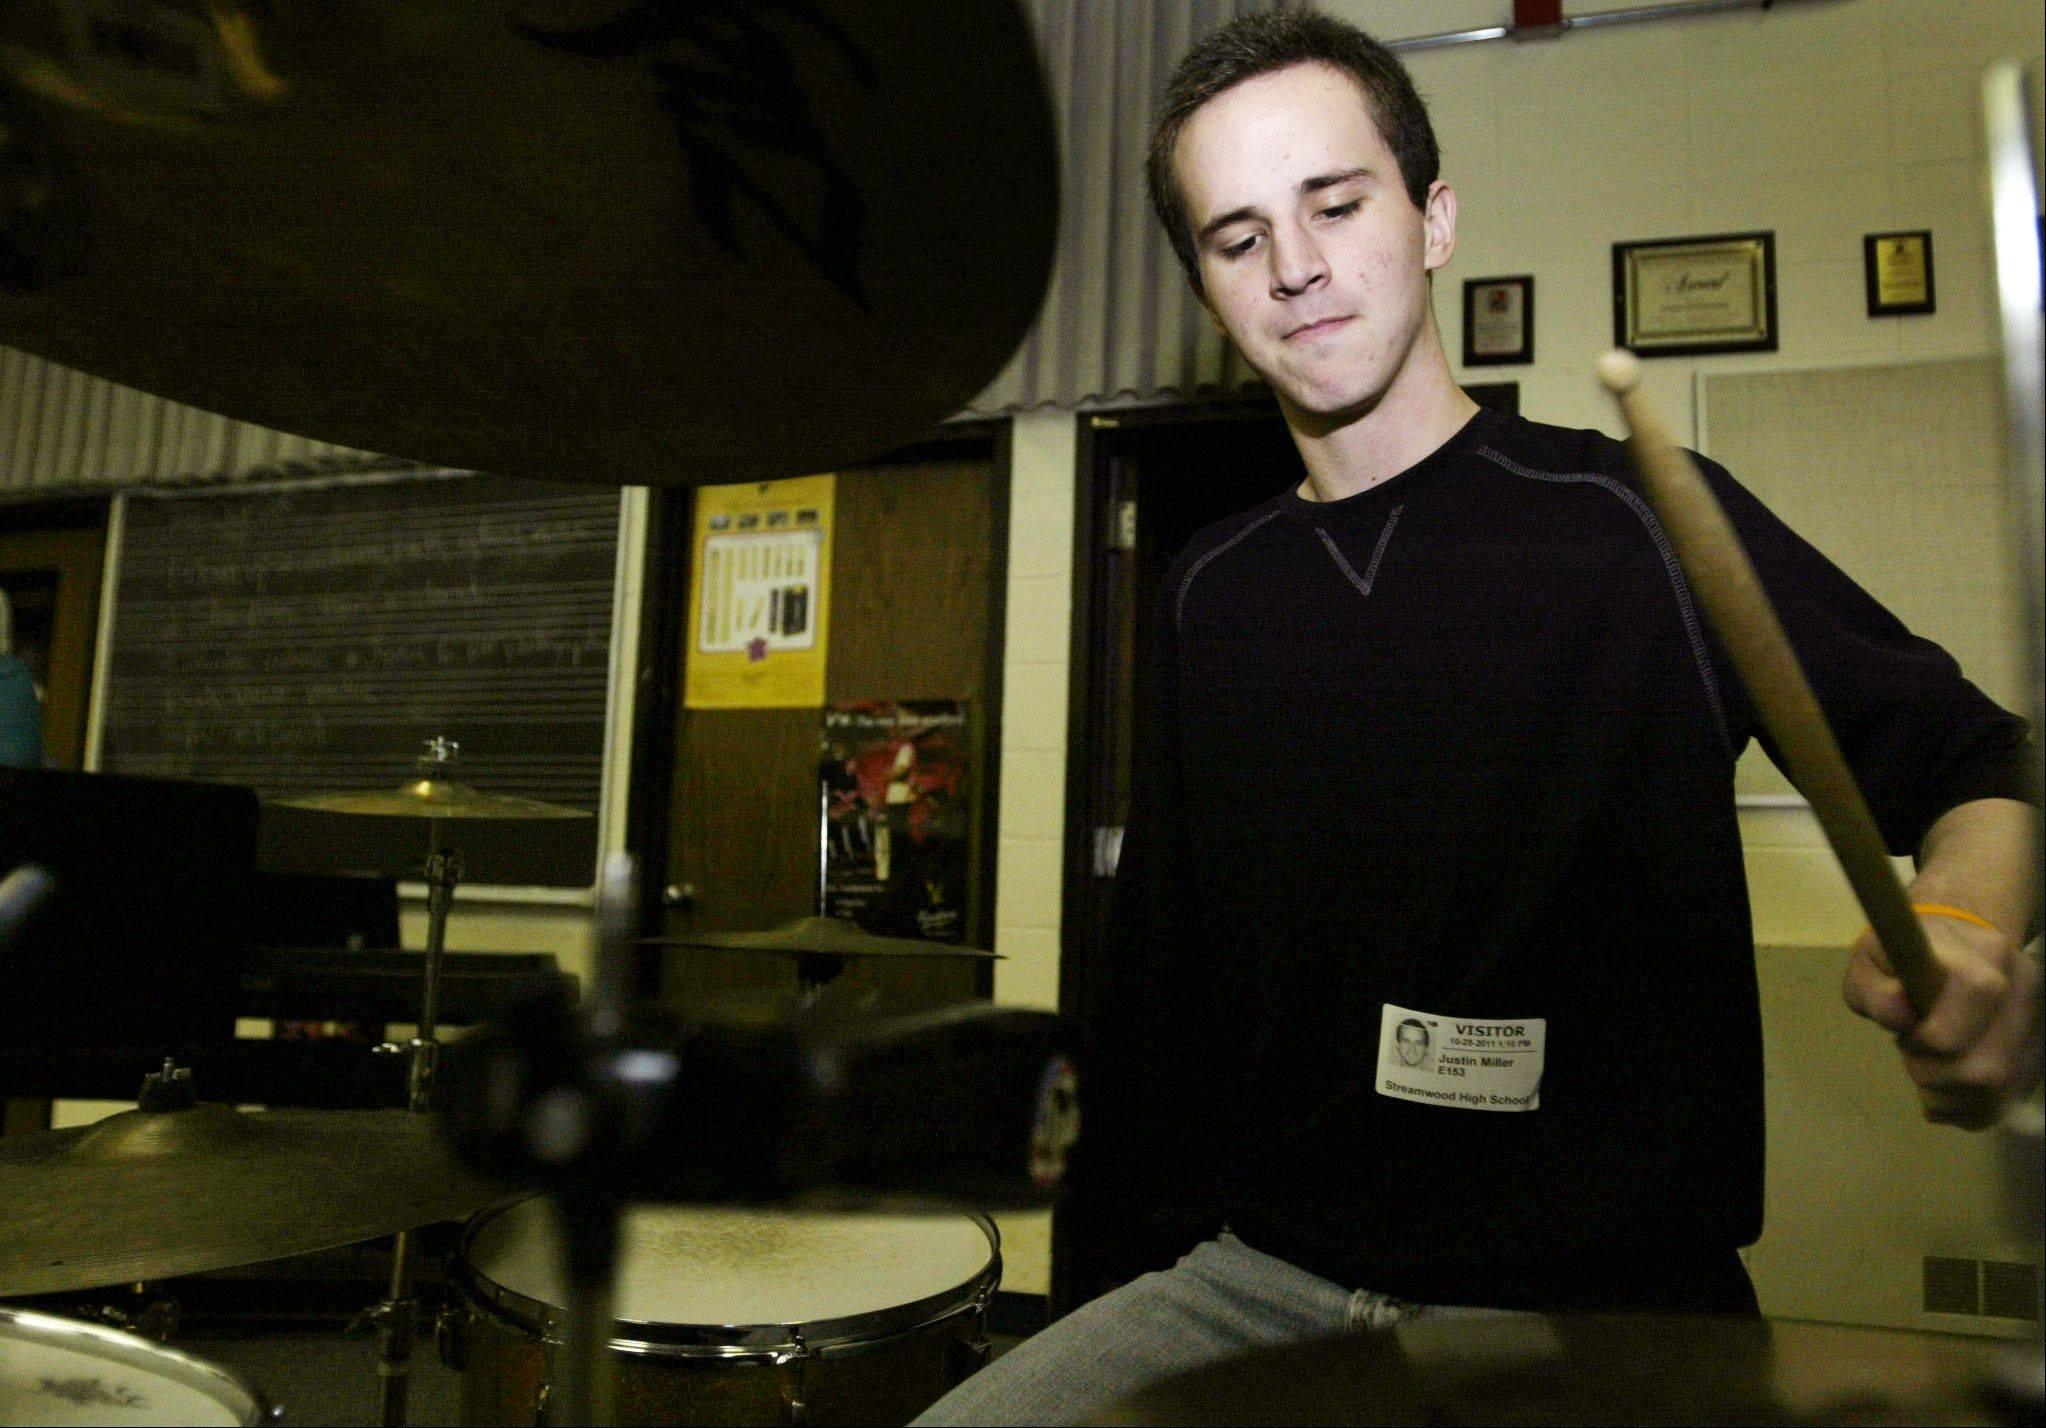 Justin Miller, a 2010 Streamwood graduate, had been playing drums since he was walking. Two years ago, he lost his right arm due to a rare type of cancer, epithelioid sarcoma. He lost his fight to the cancer this week.